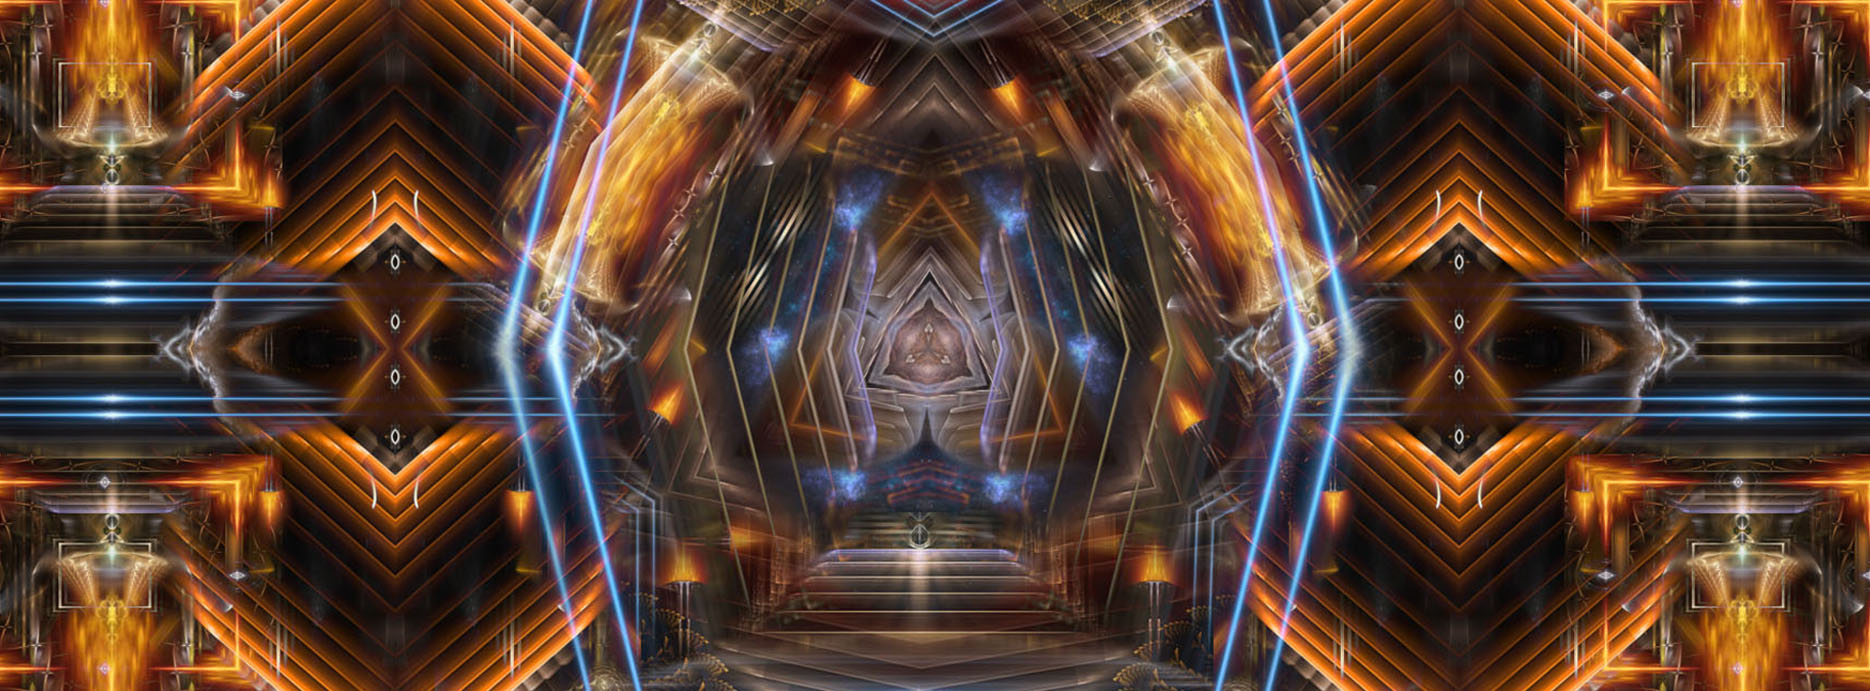 Image by Marc Eden 7th Dimensional Art